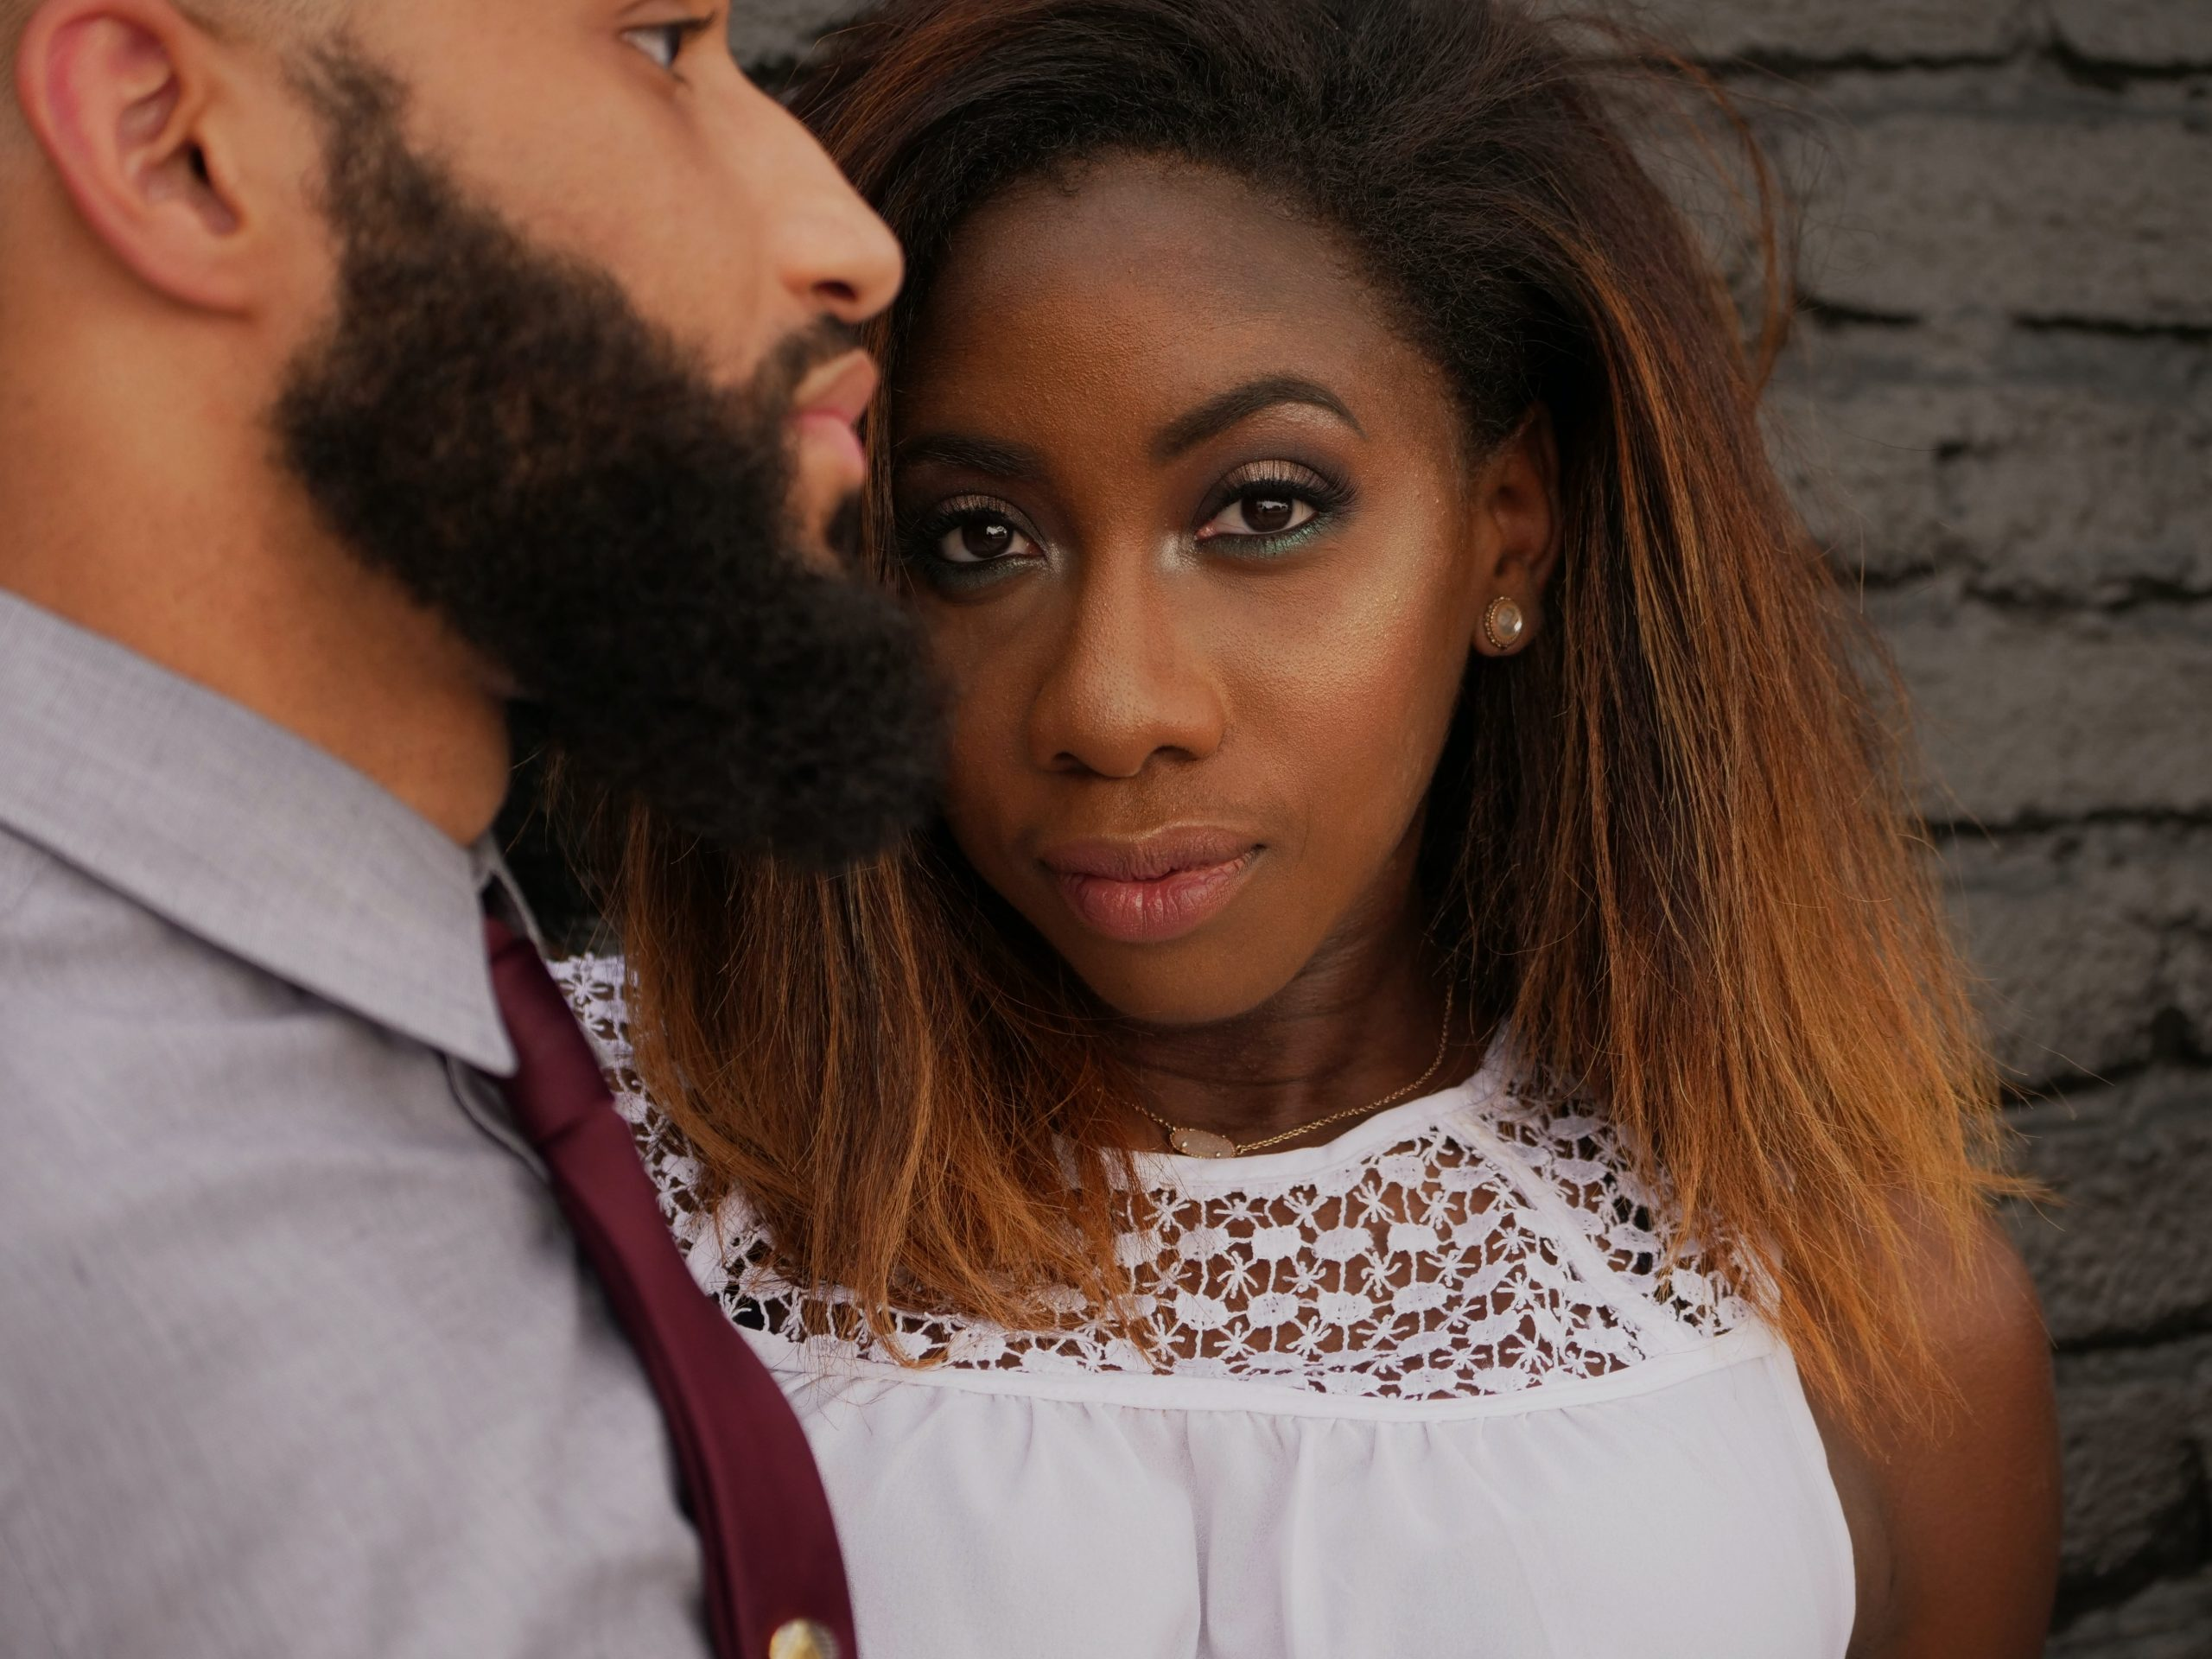 4 Ways to Improve Communication in Your Relationship by Therapist Bree Ajayi at Time to Exhale Counseling in Fort Worth, Texas